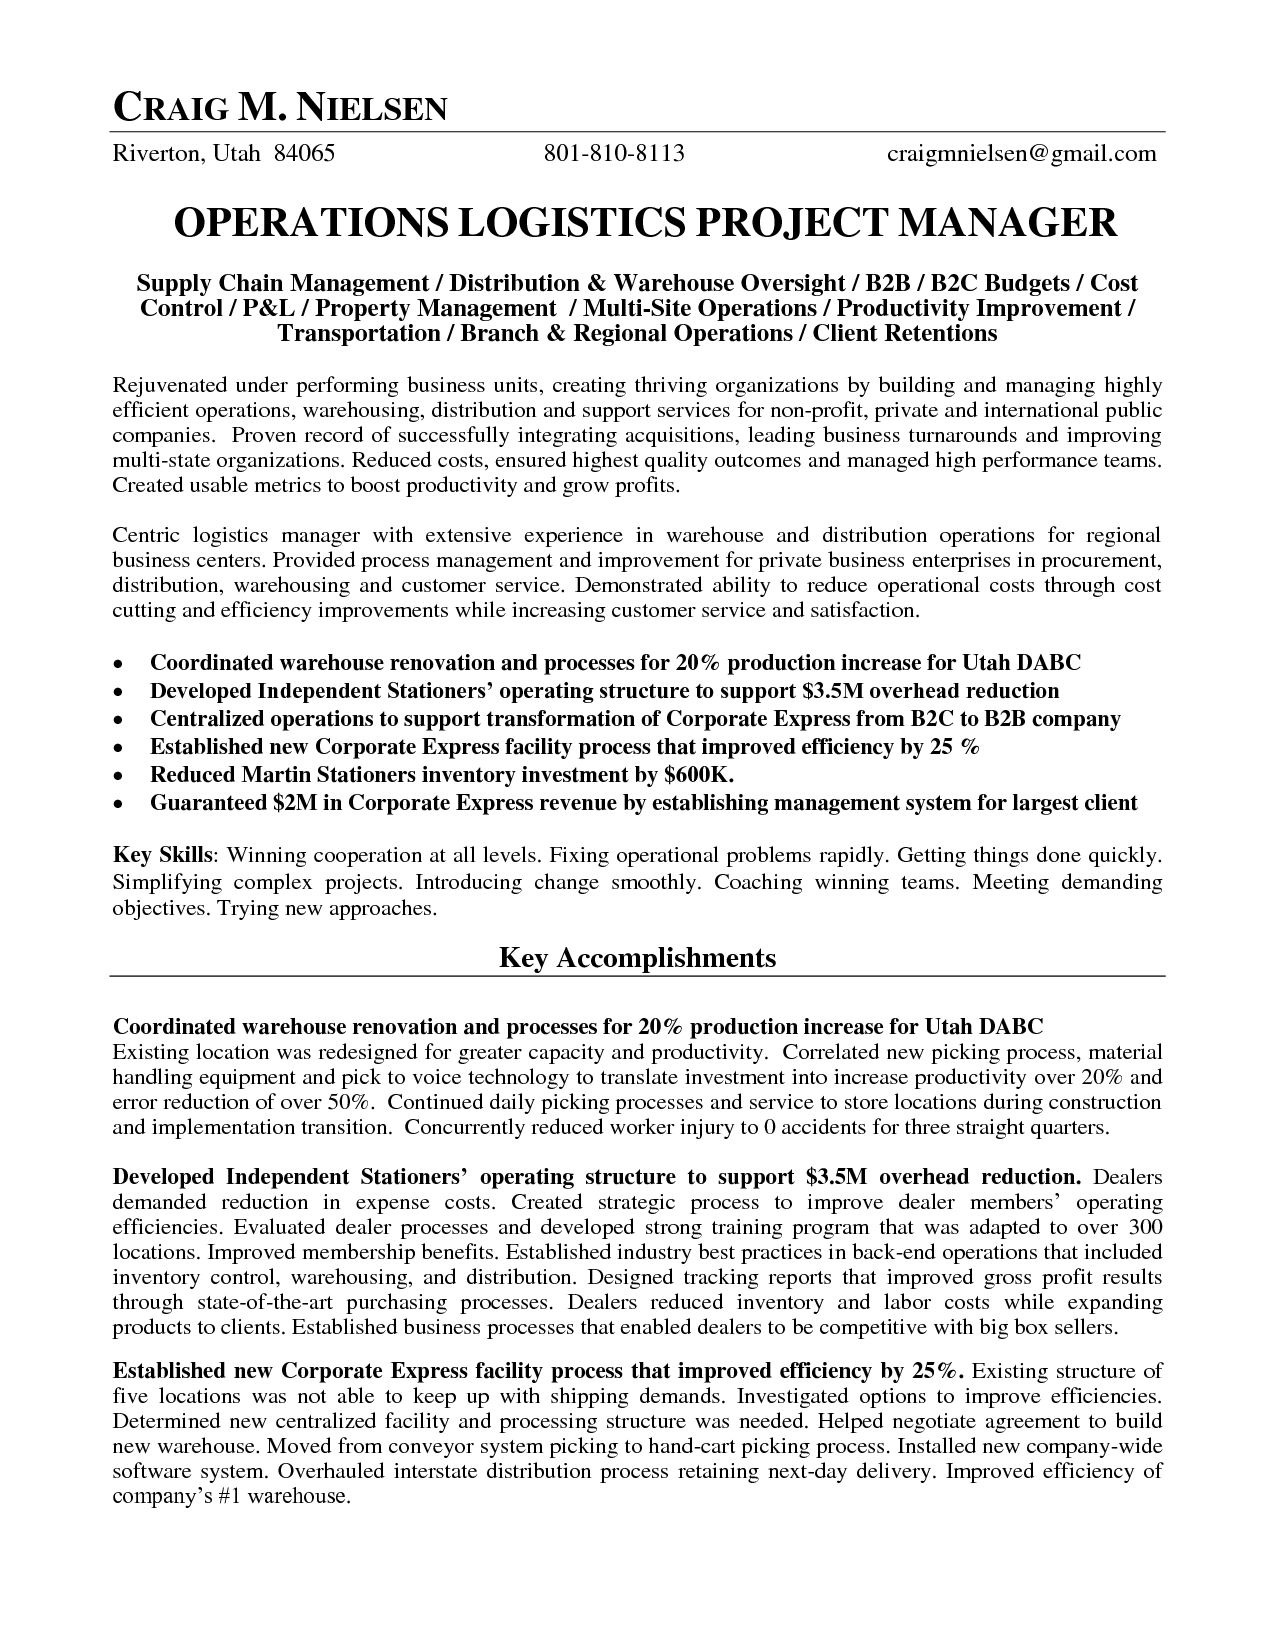 Supply Chain Manager Resume Logistics Operations Manager Resume  Operations Logistics Project